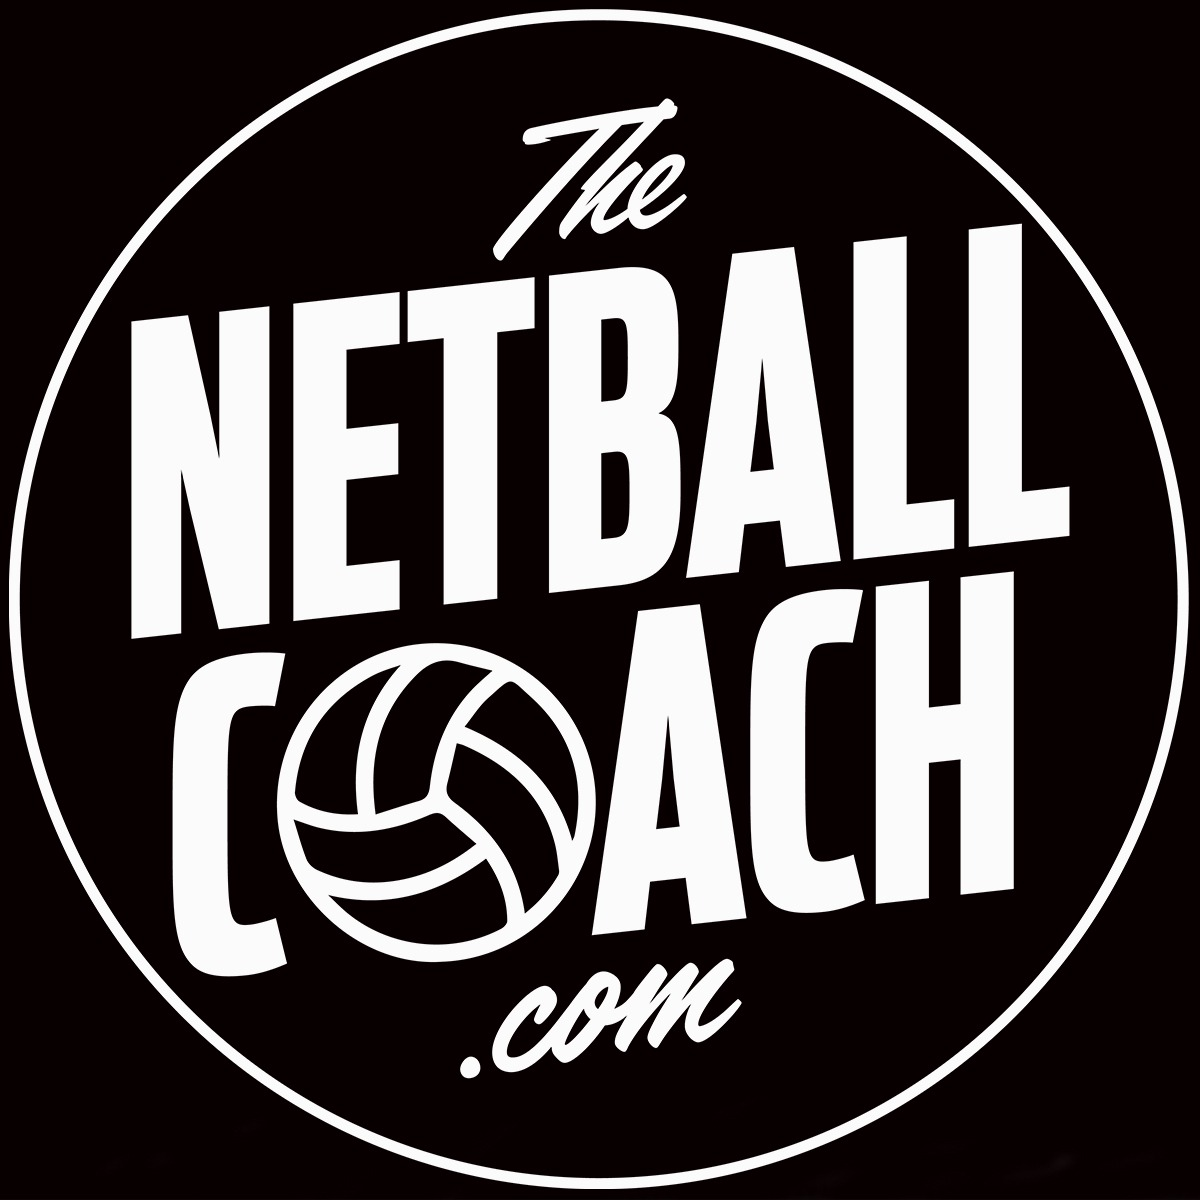 thenetballcoach.com - Netball coaching videos, drills and training resources for coaches and players